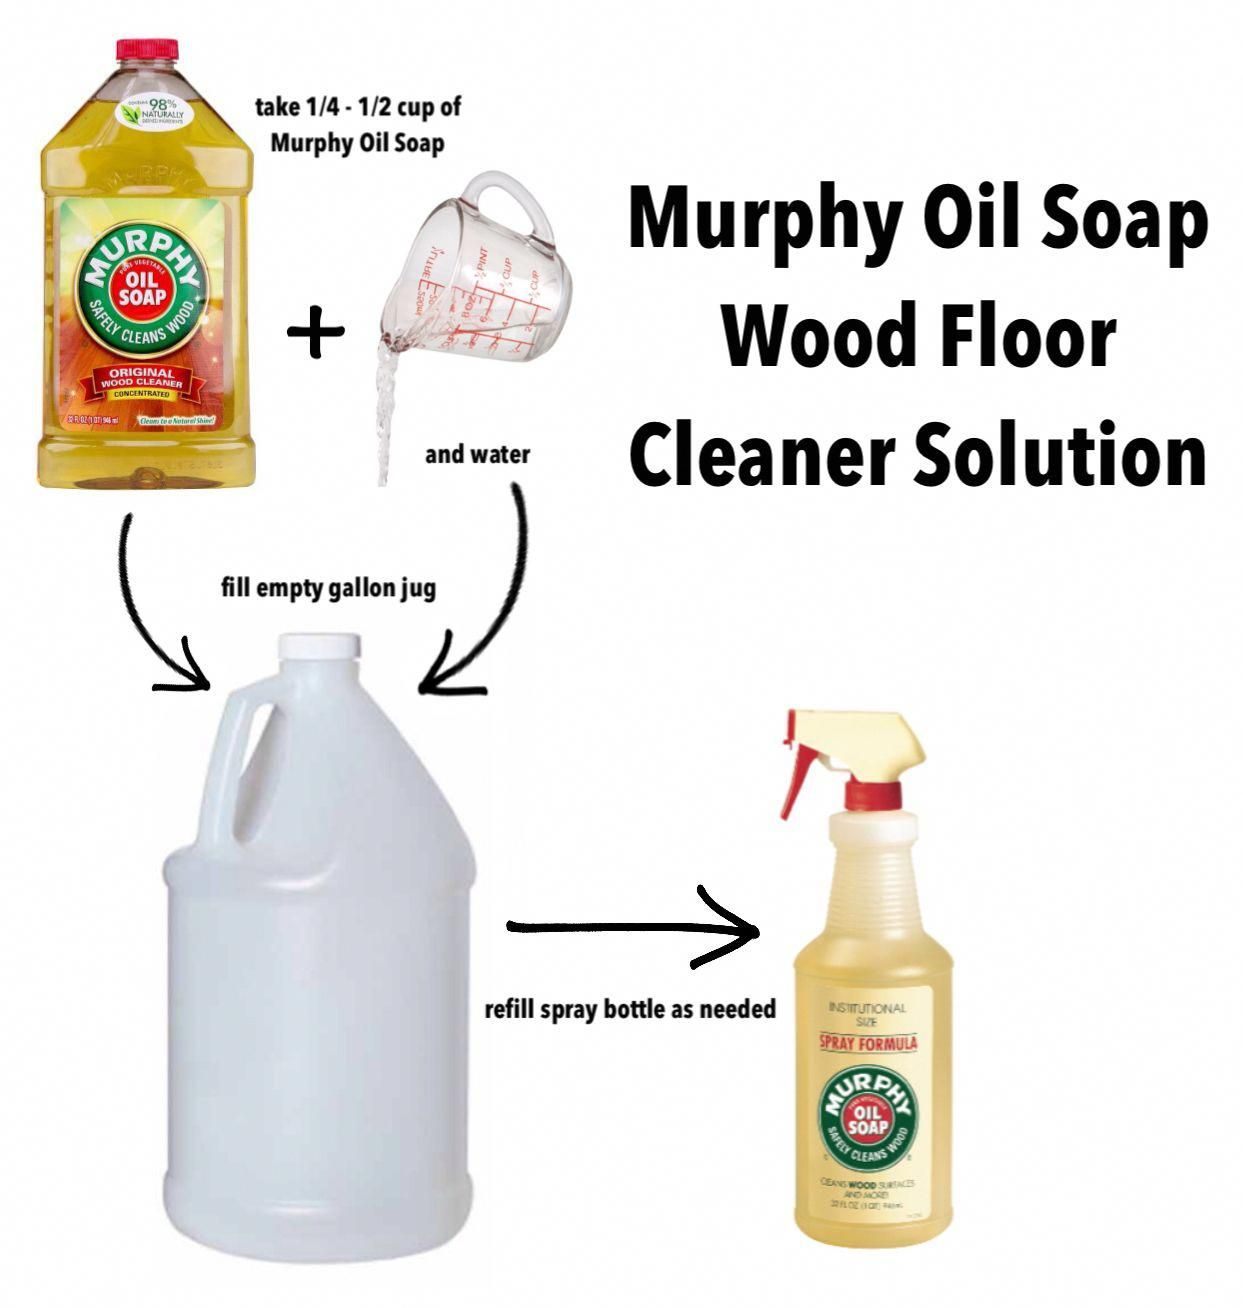 ('Murphy Oil Soap Wood Floor Cleaner Solution